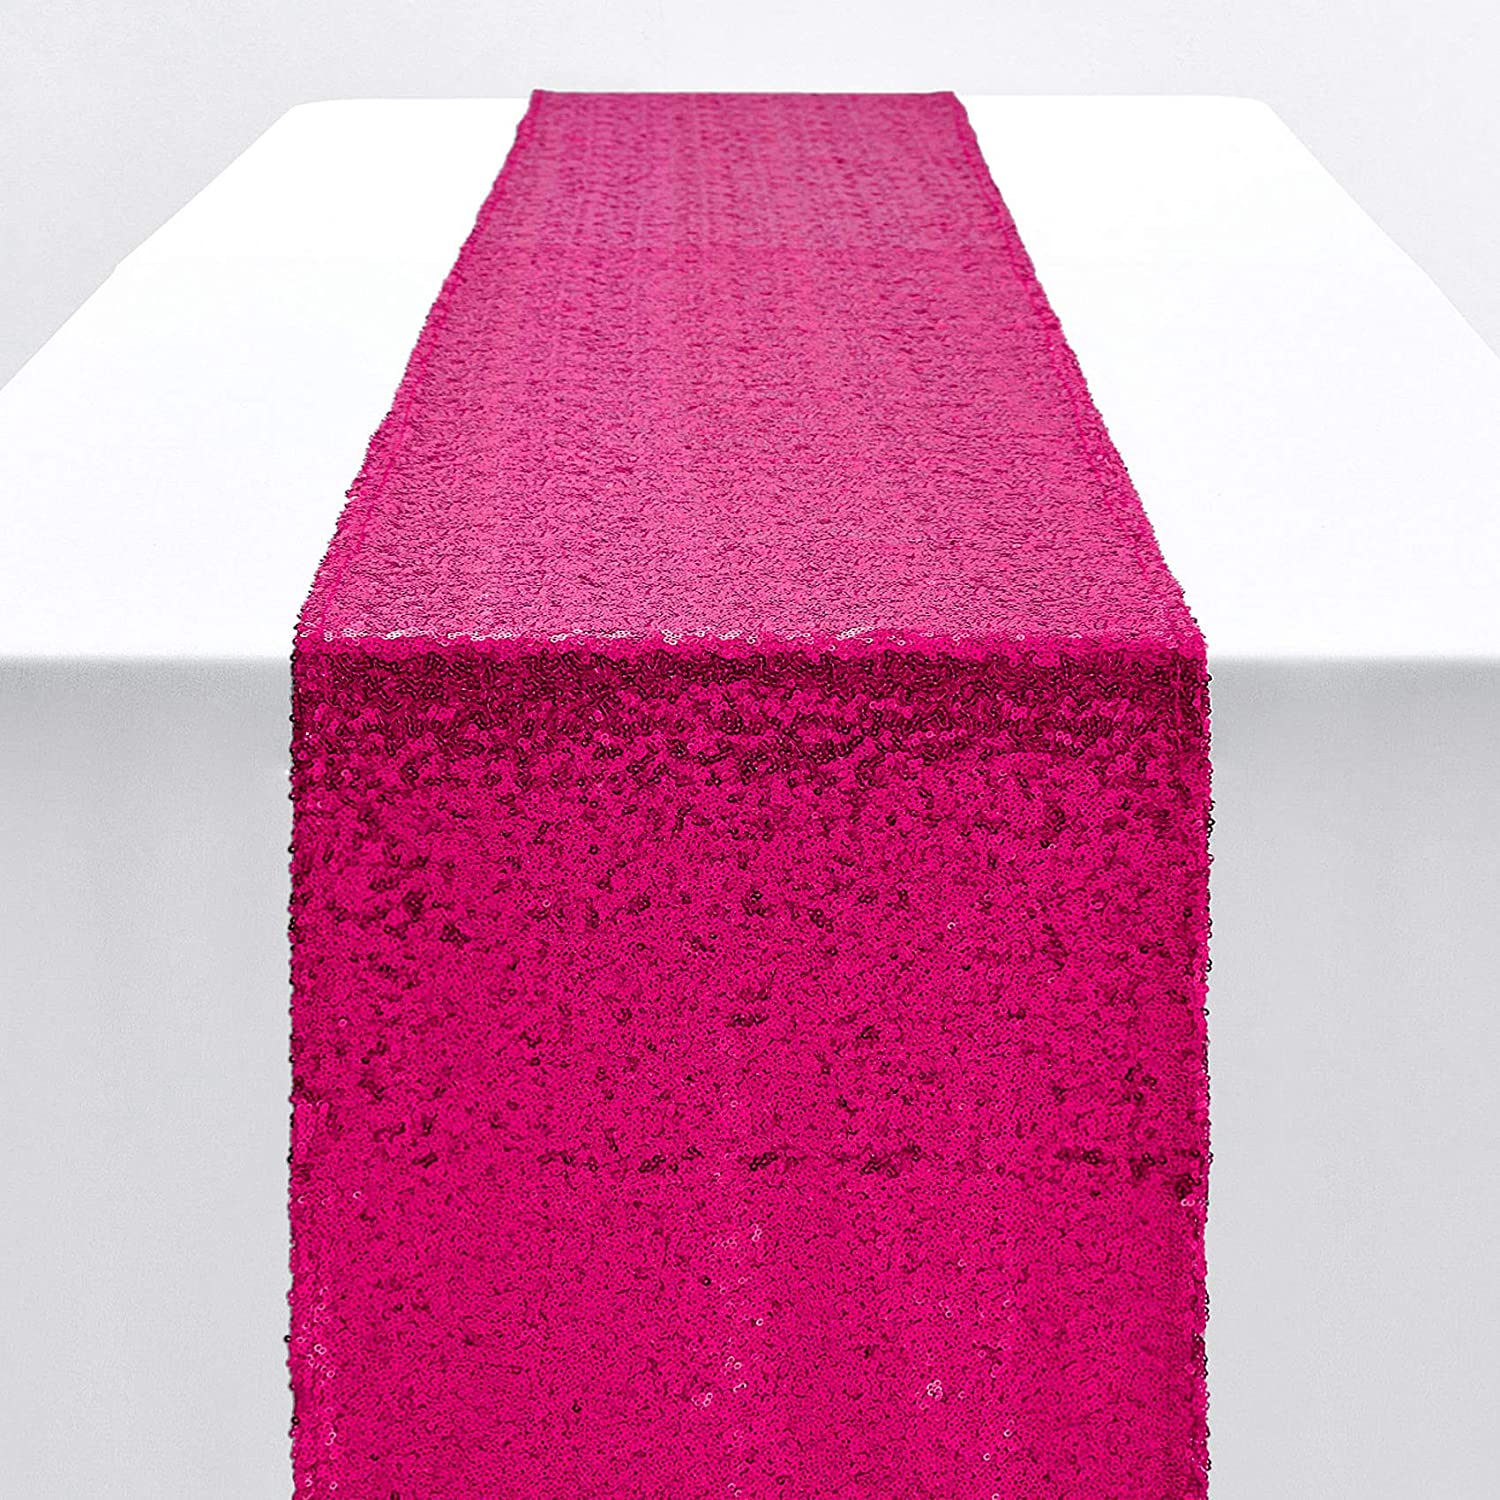 Pufogu 12 x 72 inches Hot Pink Sequin Table Runner, Fuchsia Glitter Table Runner for Birthday Party Supplies Decorations Wedding Bachelorette Holiday Celebration Bridal Shower Baby Shower (1 Pack)